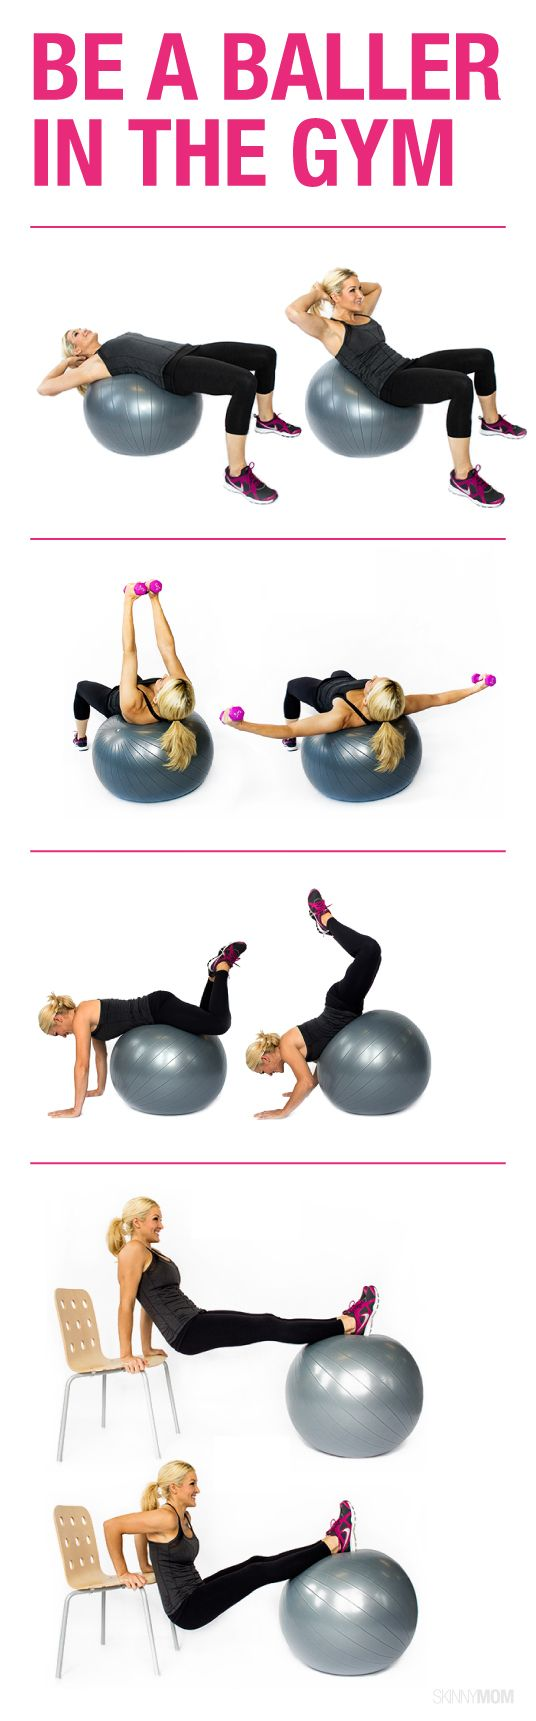 Oh yeah! BE A BALLER in the gym with this workout!